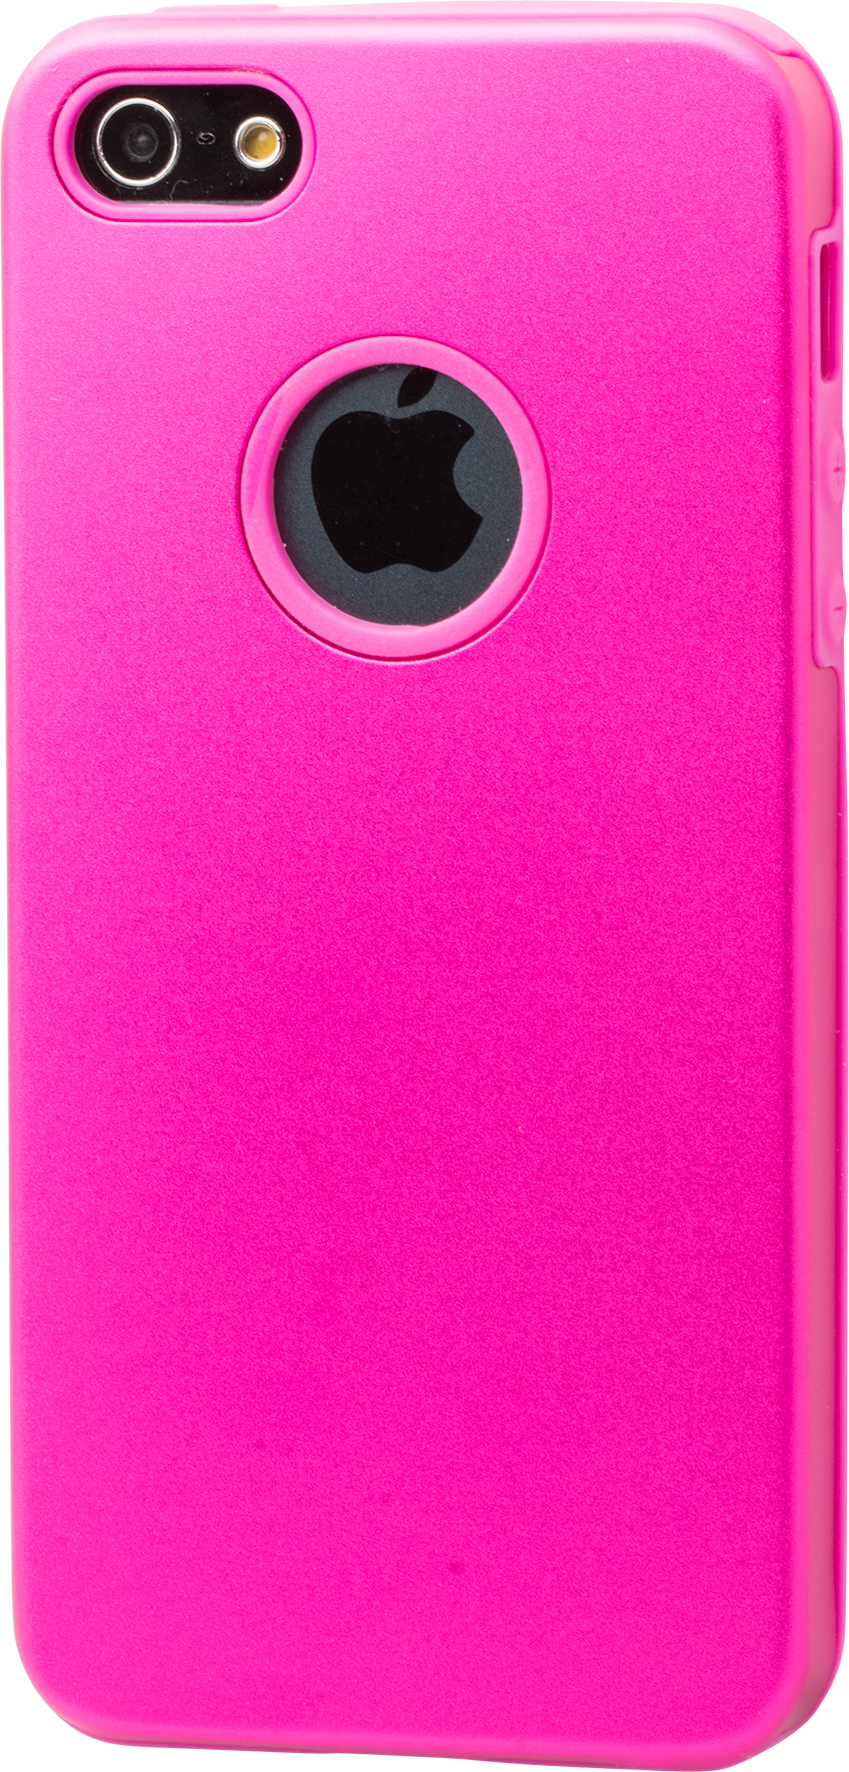 Läs mer om iZound Alu-Case Duo iPhone 5/5S Pink